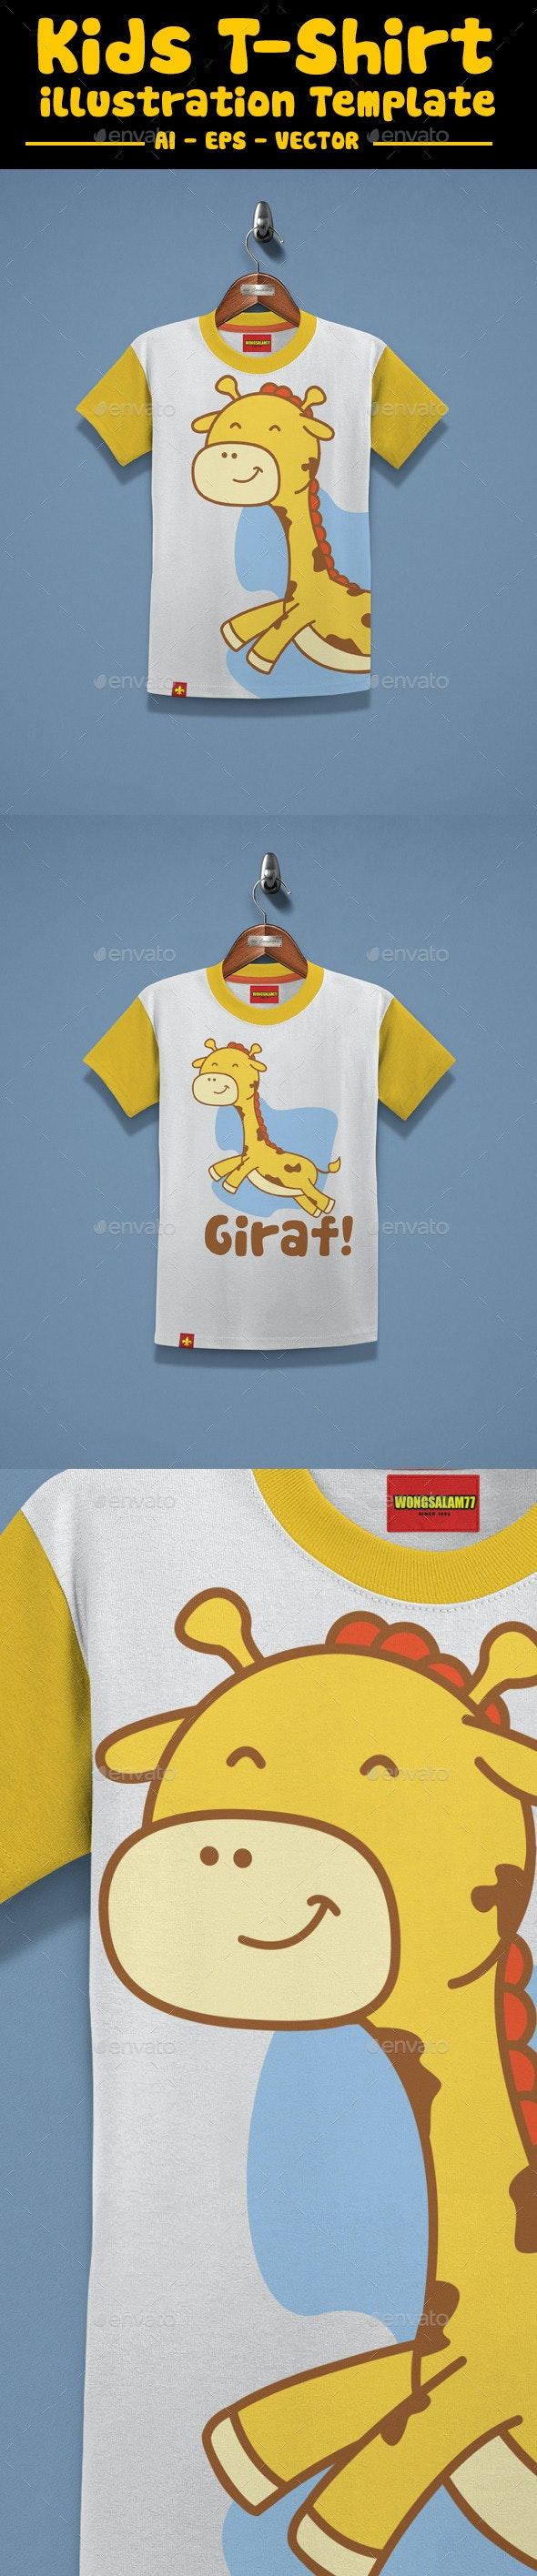 Kids T-Shirt Design